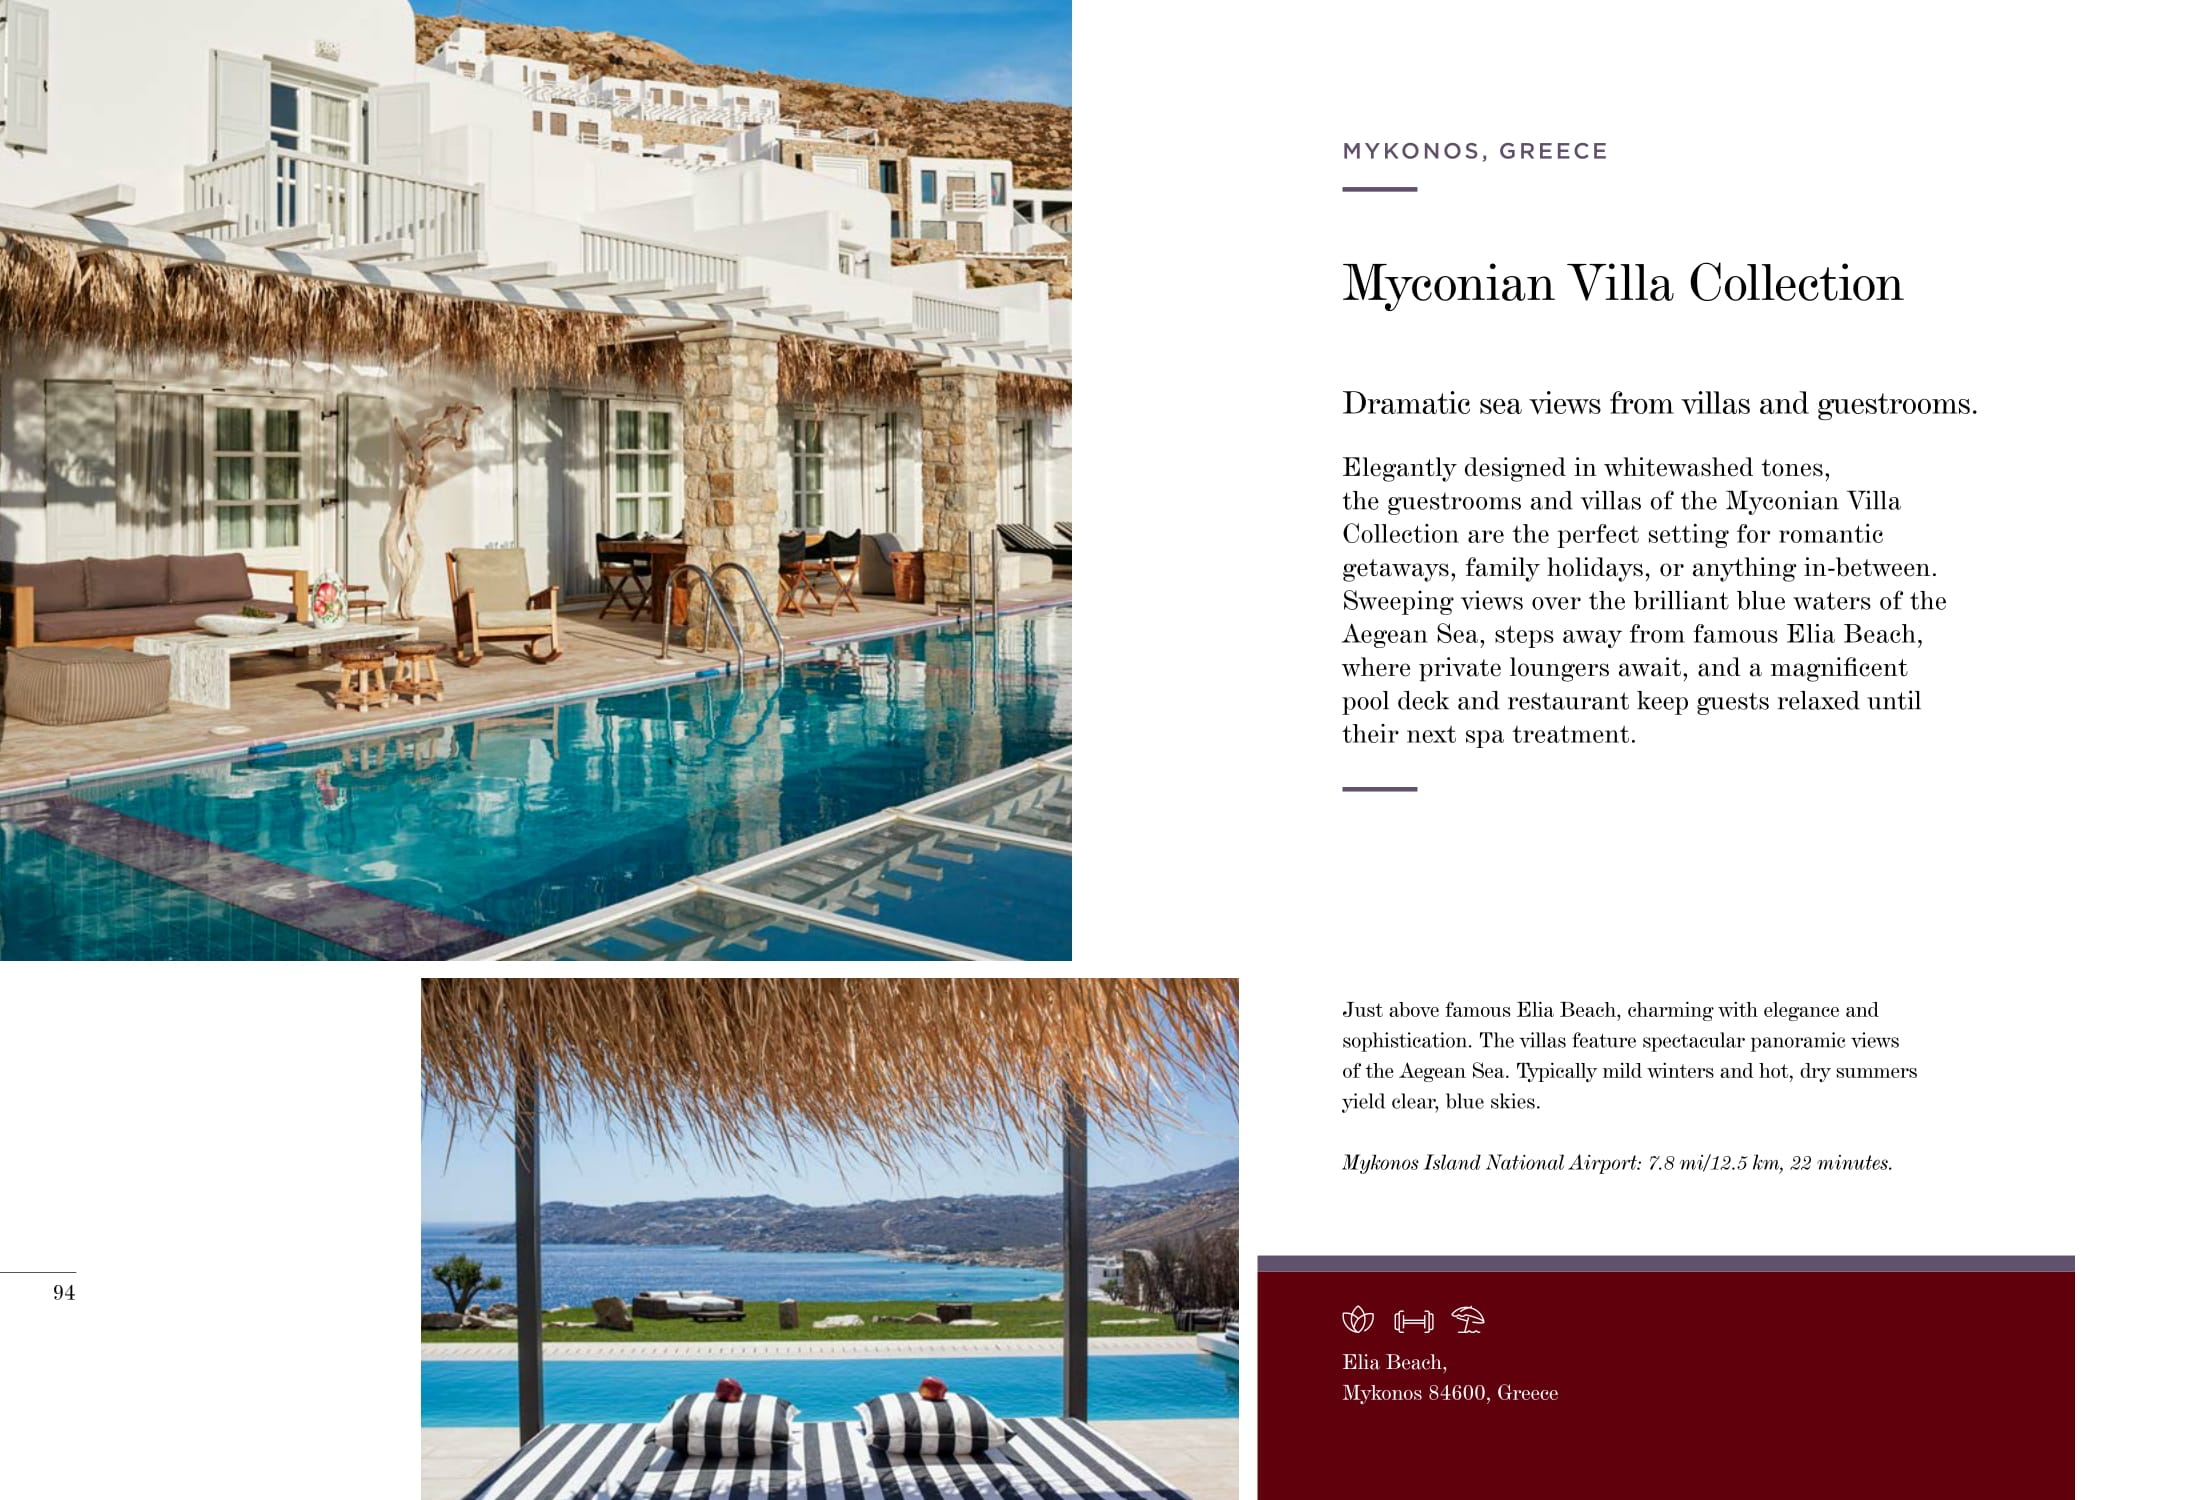 Myconian Villa Collection, Greece